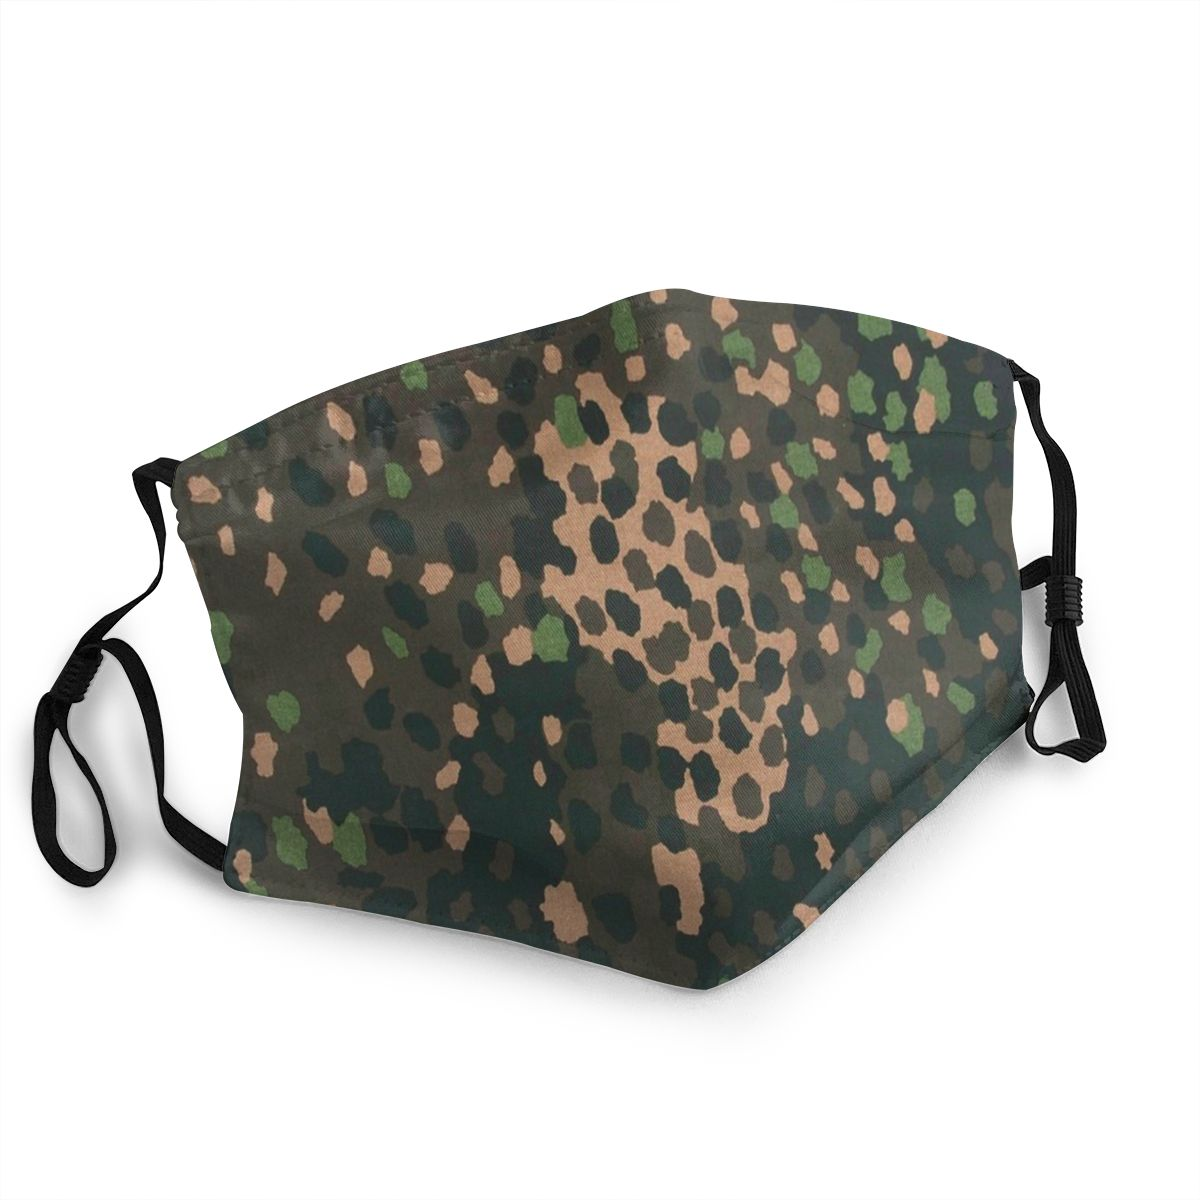 Pea Dot Camo Reusable Face Mask Multicam Military Anti Bacterial Dustproof Mask Protection Cover Respirator Mouth Muffle